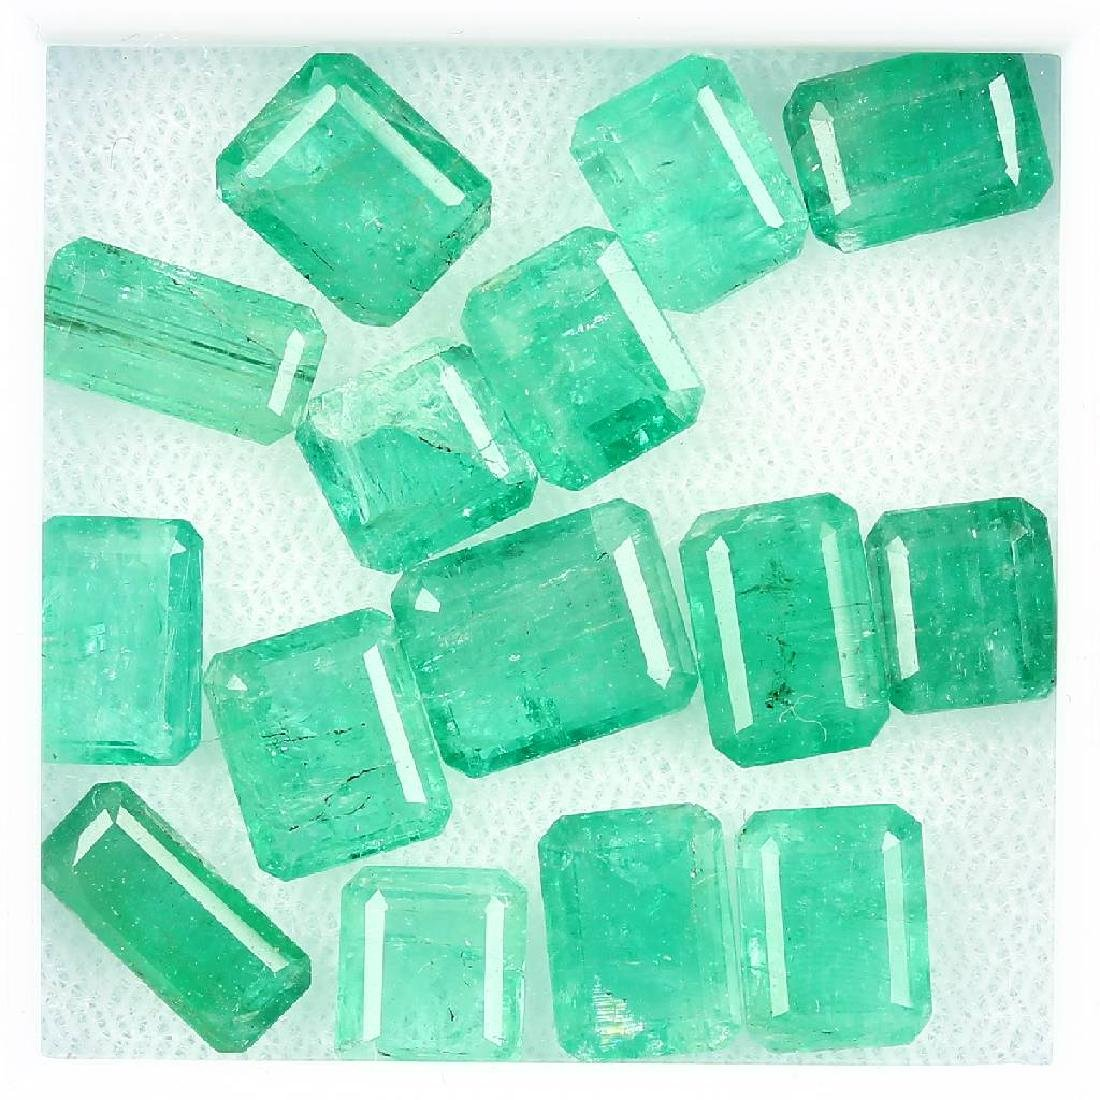 Lot loose emeralds, total approx. 20.9 ct, rectangular